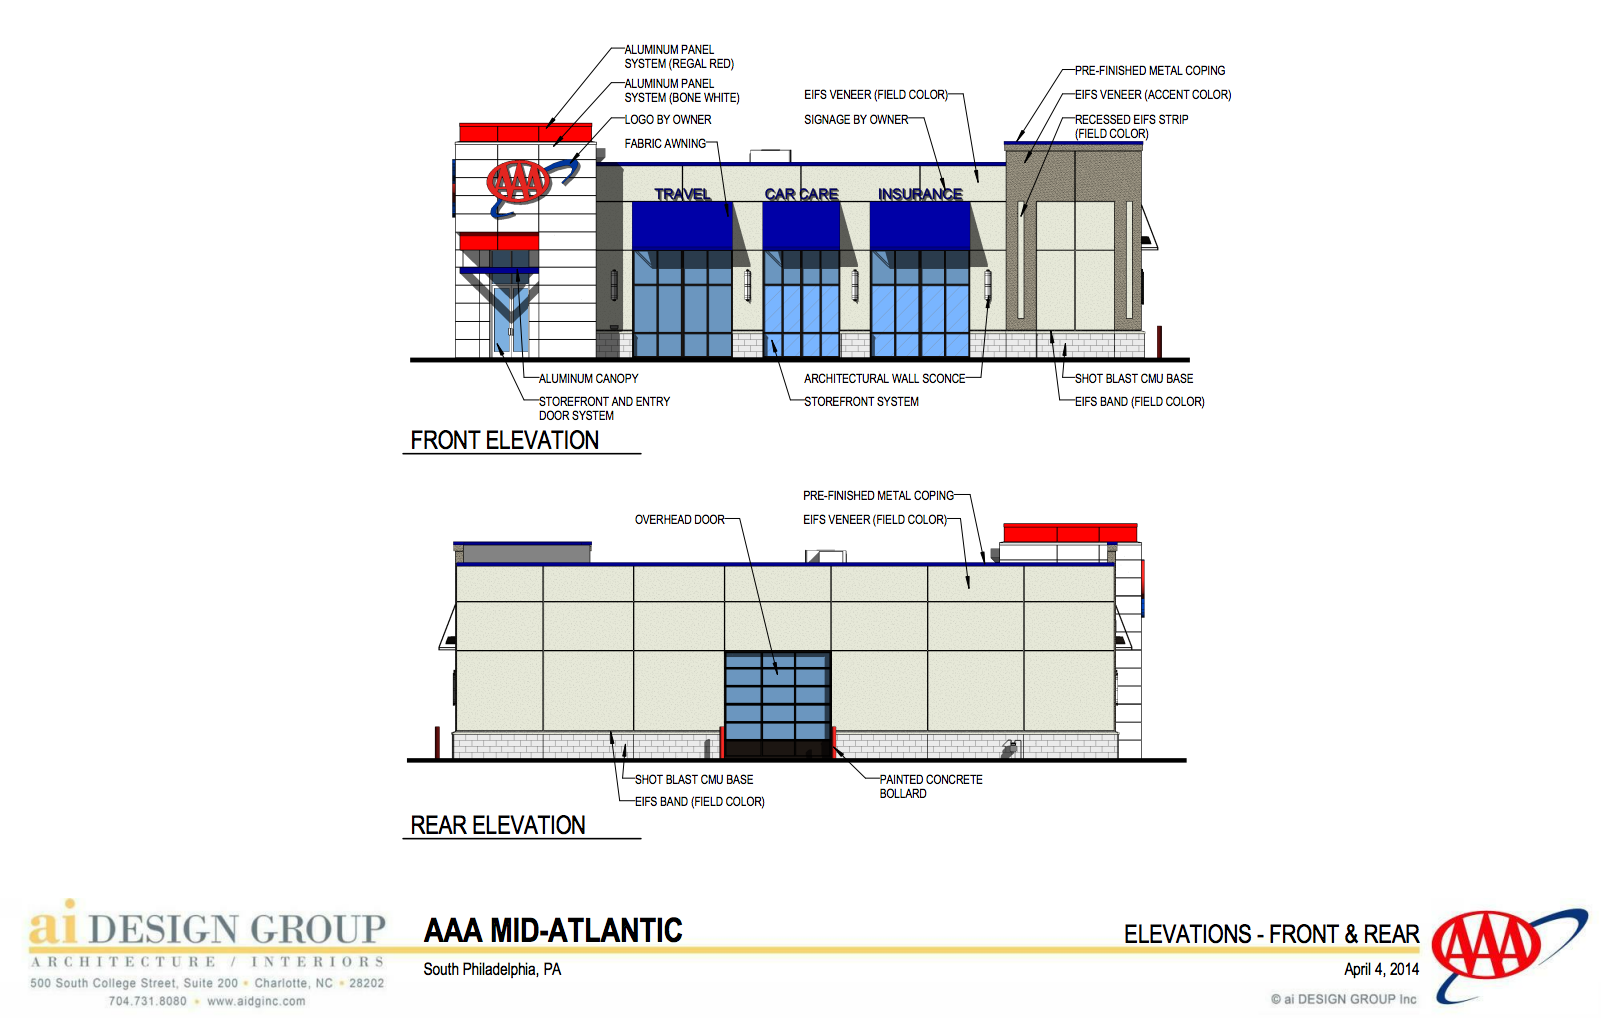 AAA elevations front and rear